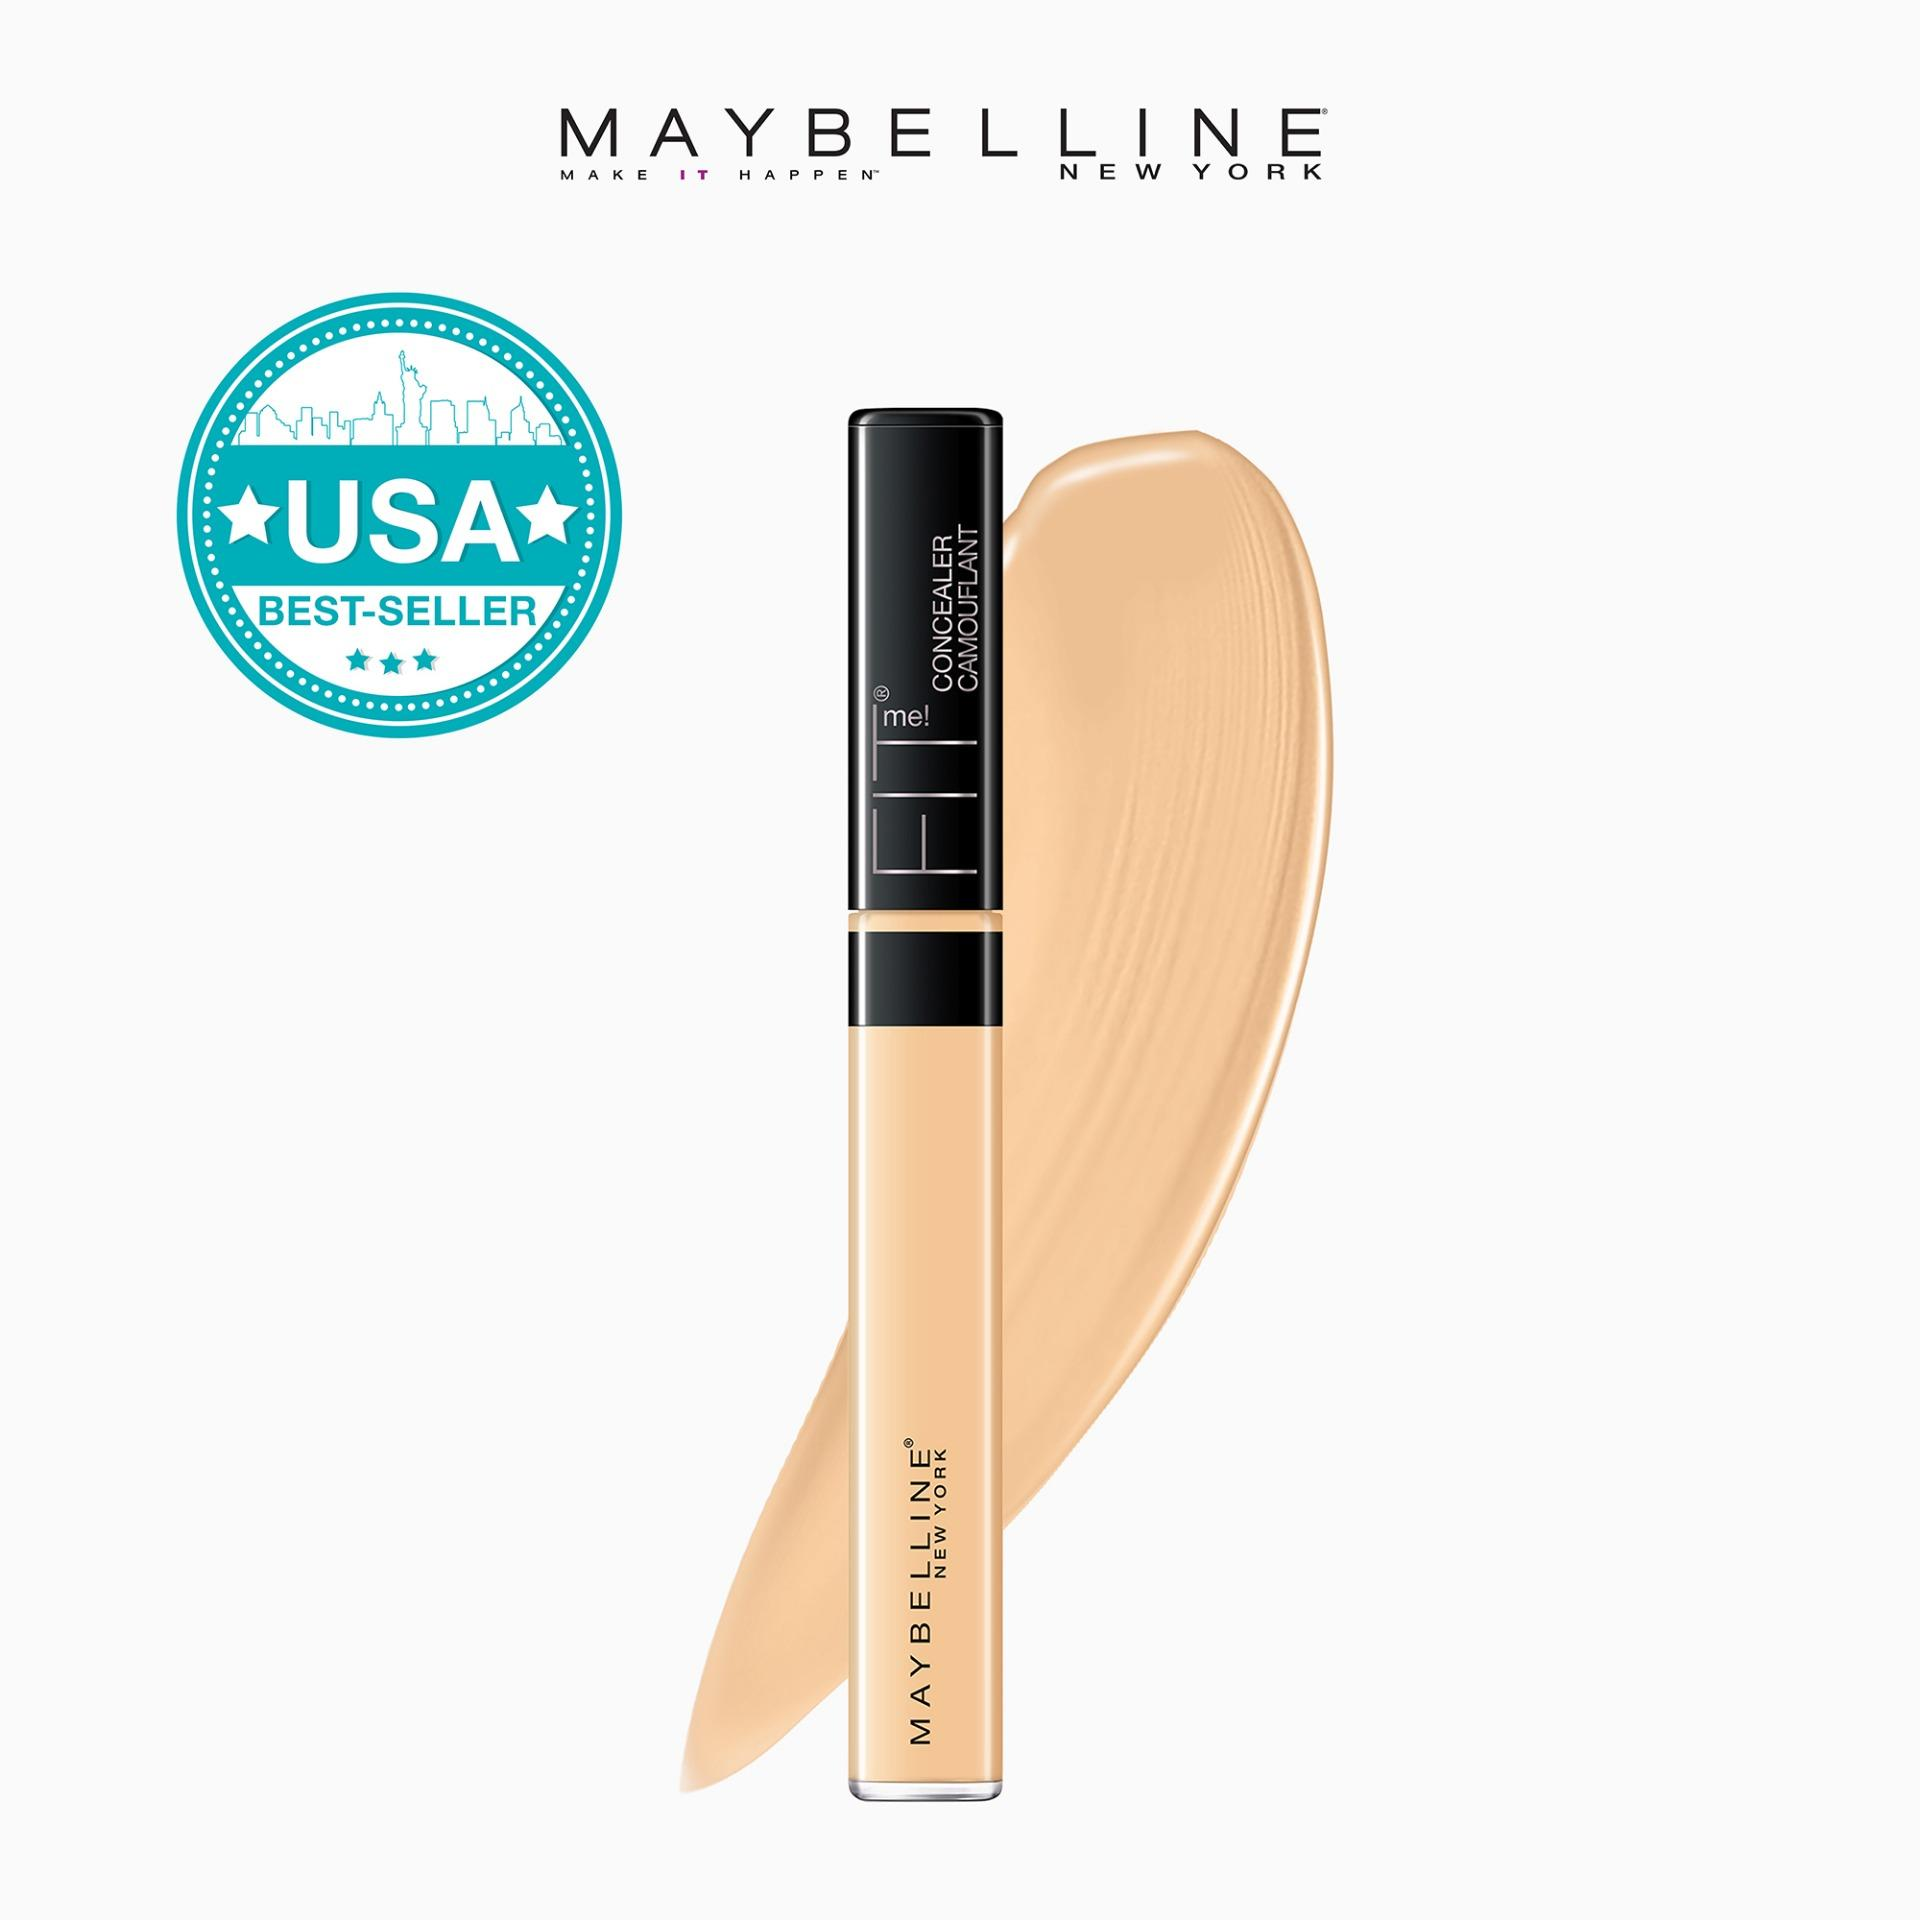 Fit Me Flawless Natural Concealer - 25 Medium [USA Bestseller] by Maybelline Philippines